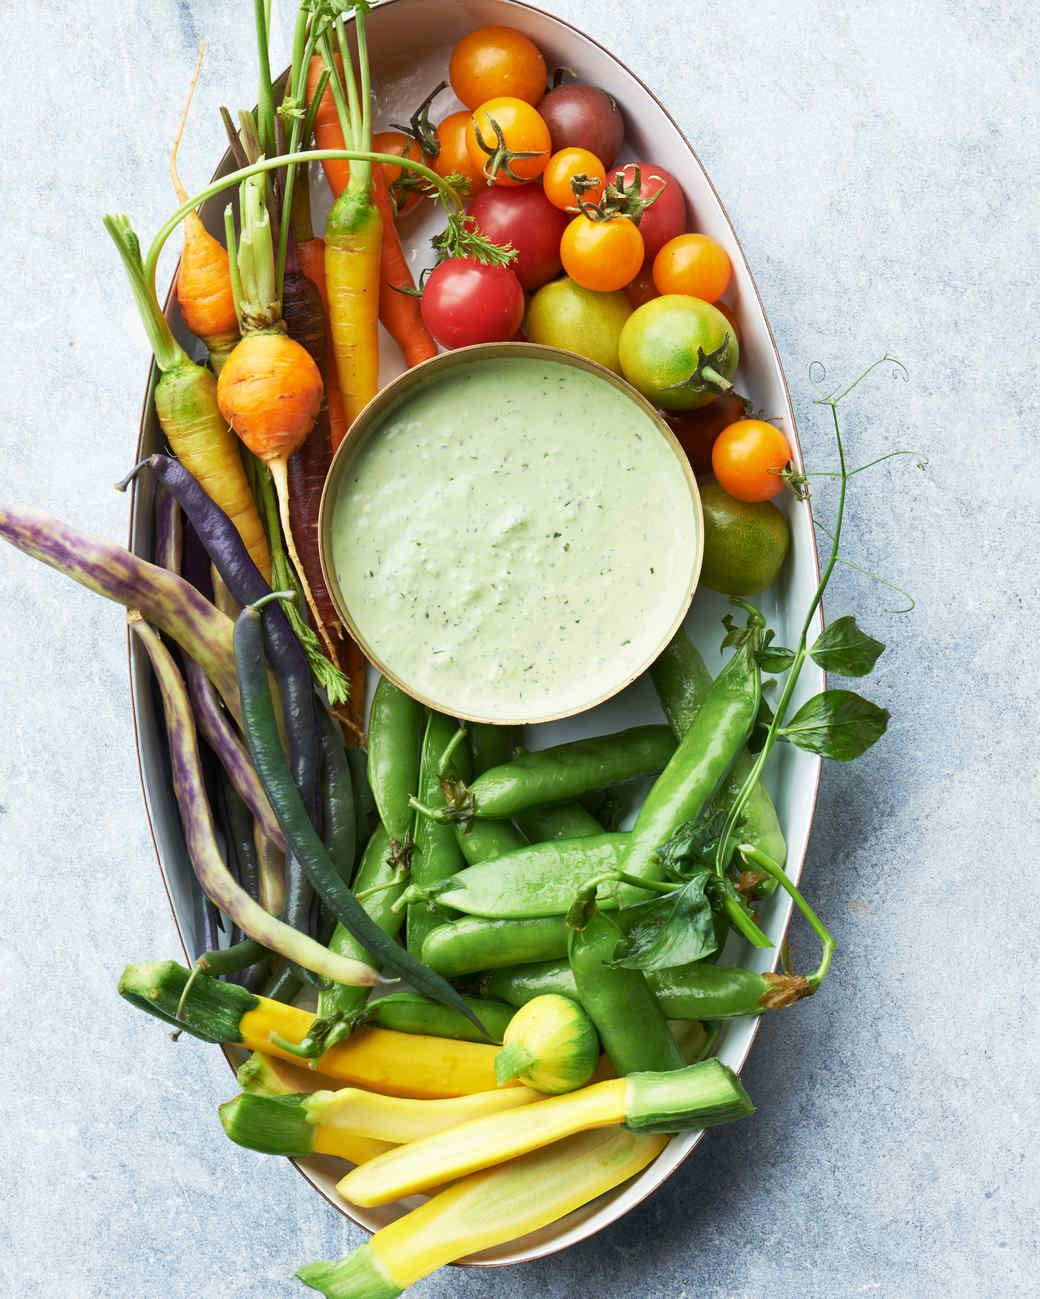 Green Goddess Dressing - doubles as a dip for a summertime crudite platter. The creamy concoction is studded with chopped fresh herbs and scallions, and it pairs particularly well with baby carrots and yellow squash, tender peas and beans, and little tomatoes.